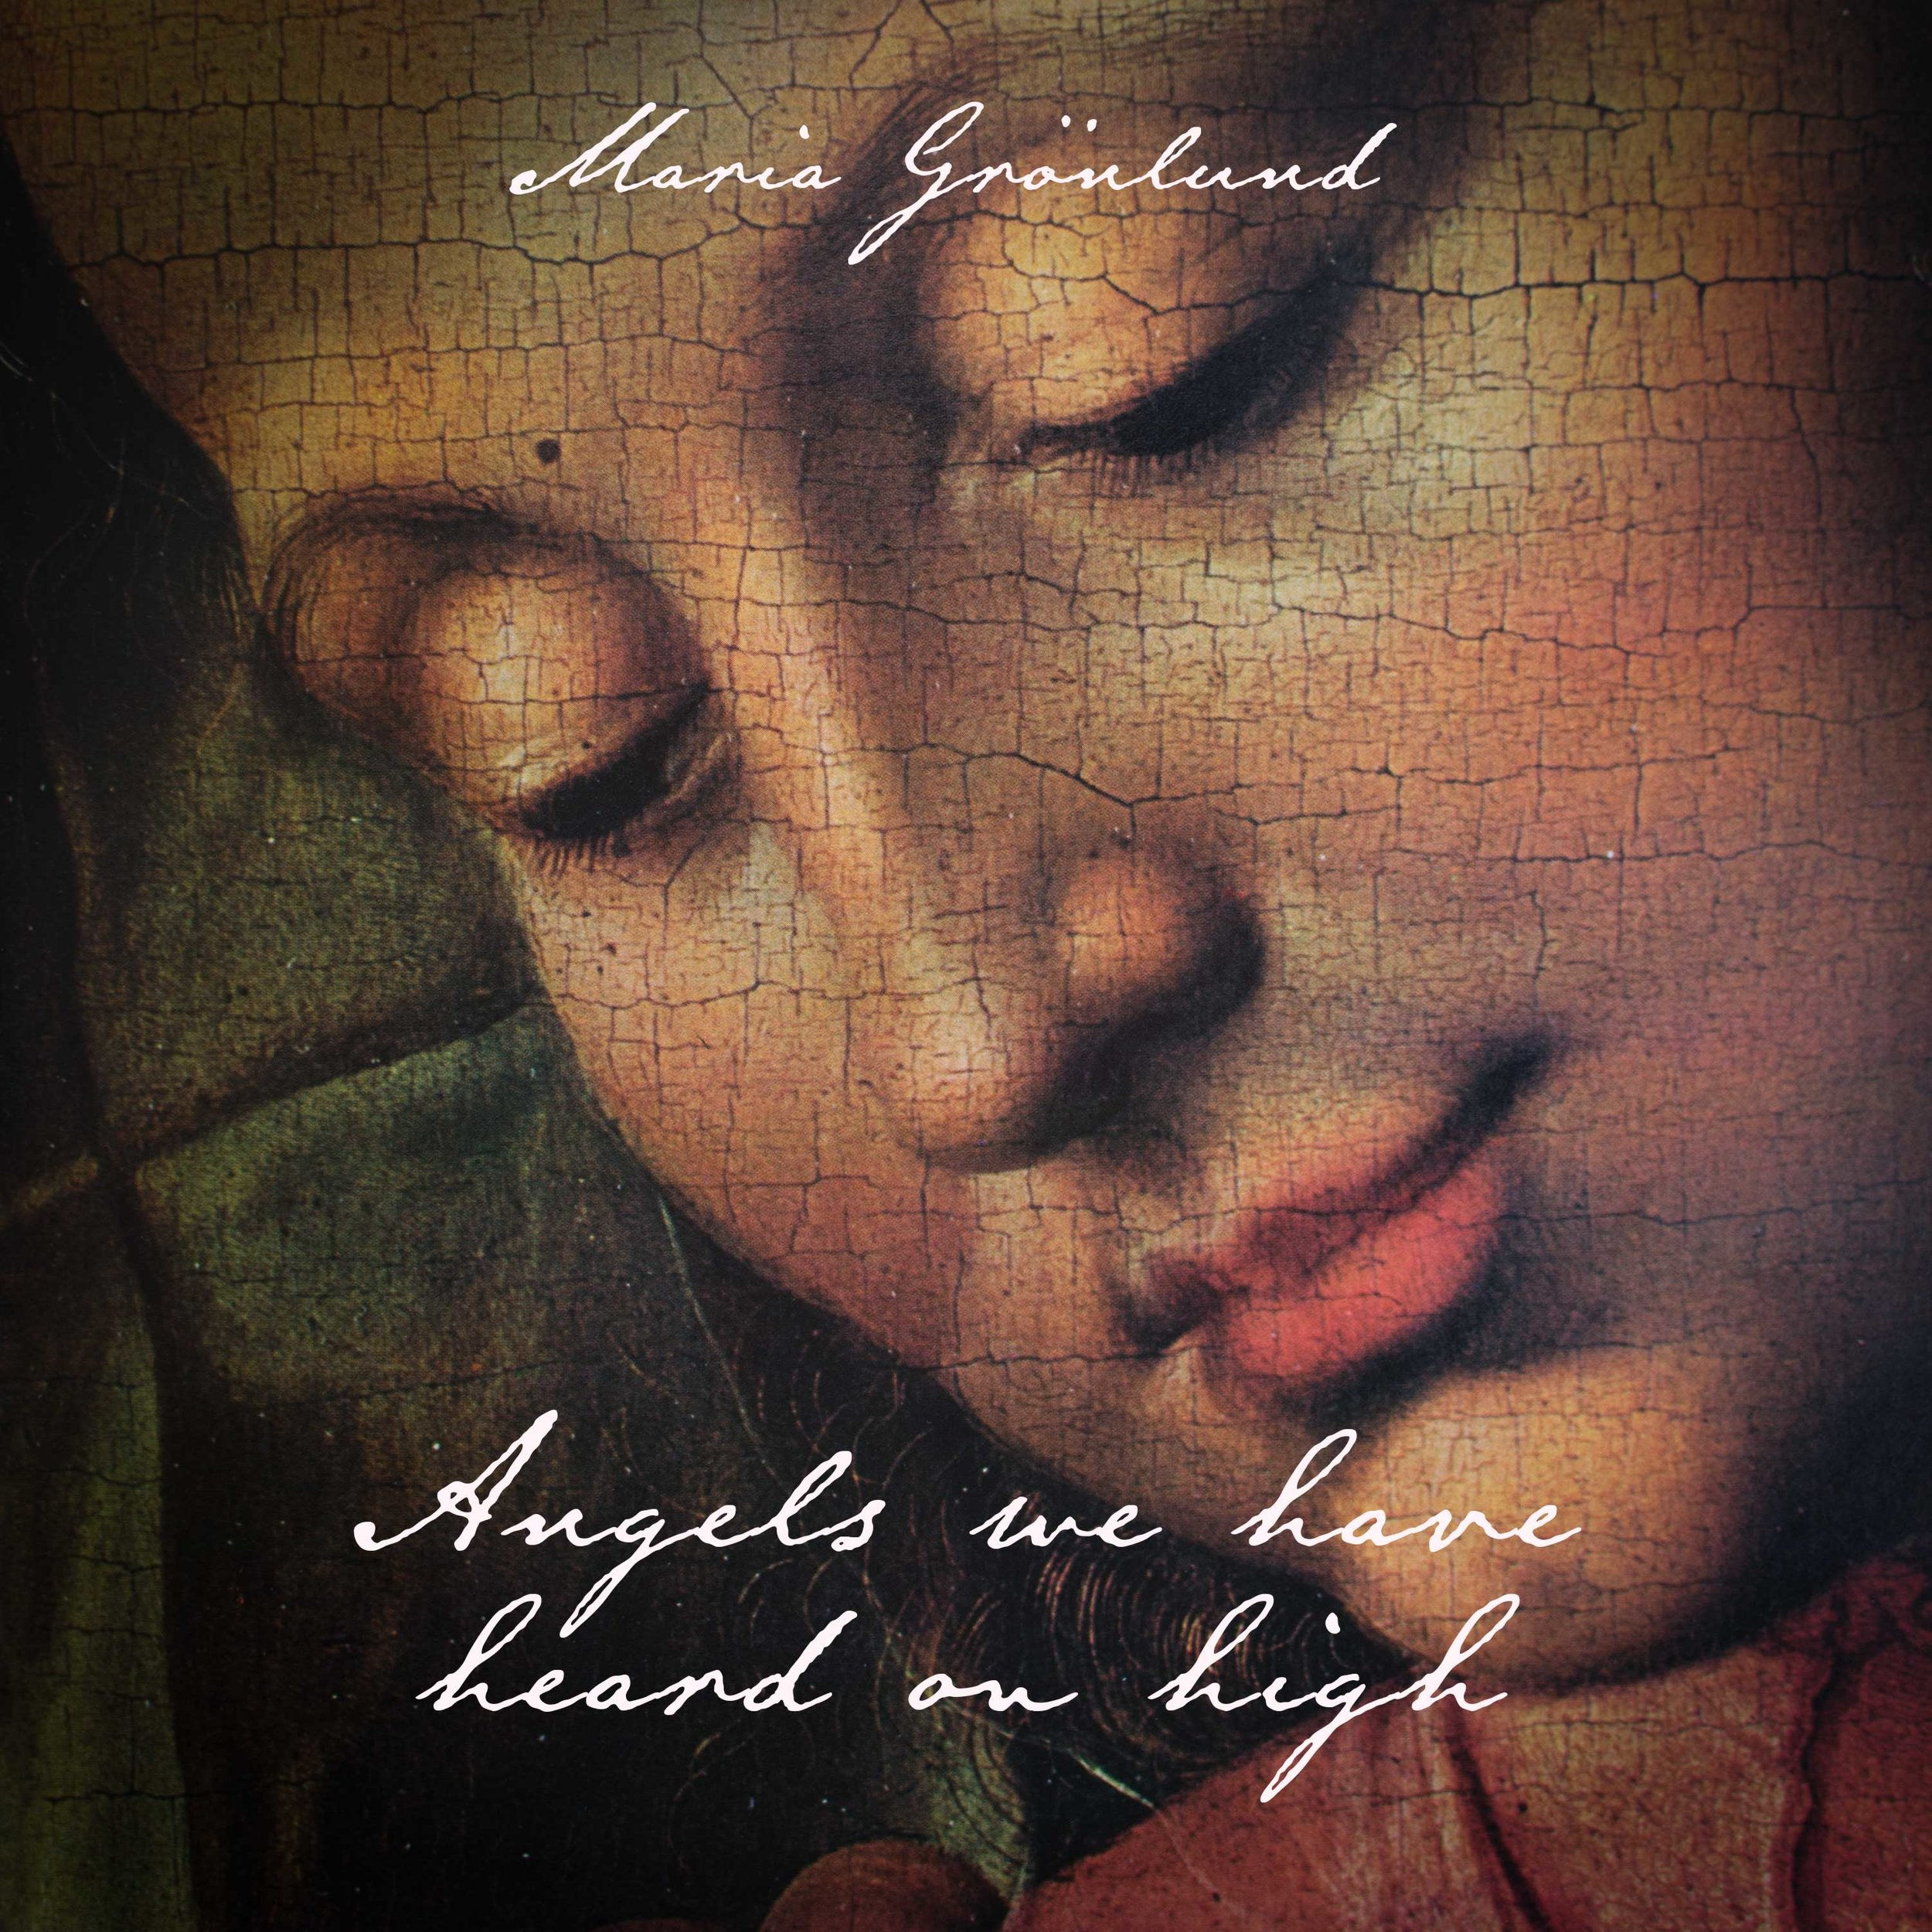 release December 7 - Piano solo arrangement of the beautiful ancient Christmas Carol Angels We Have Heard On High.